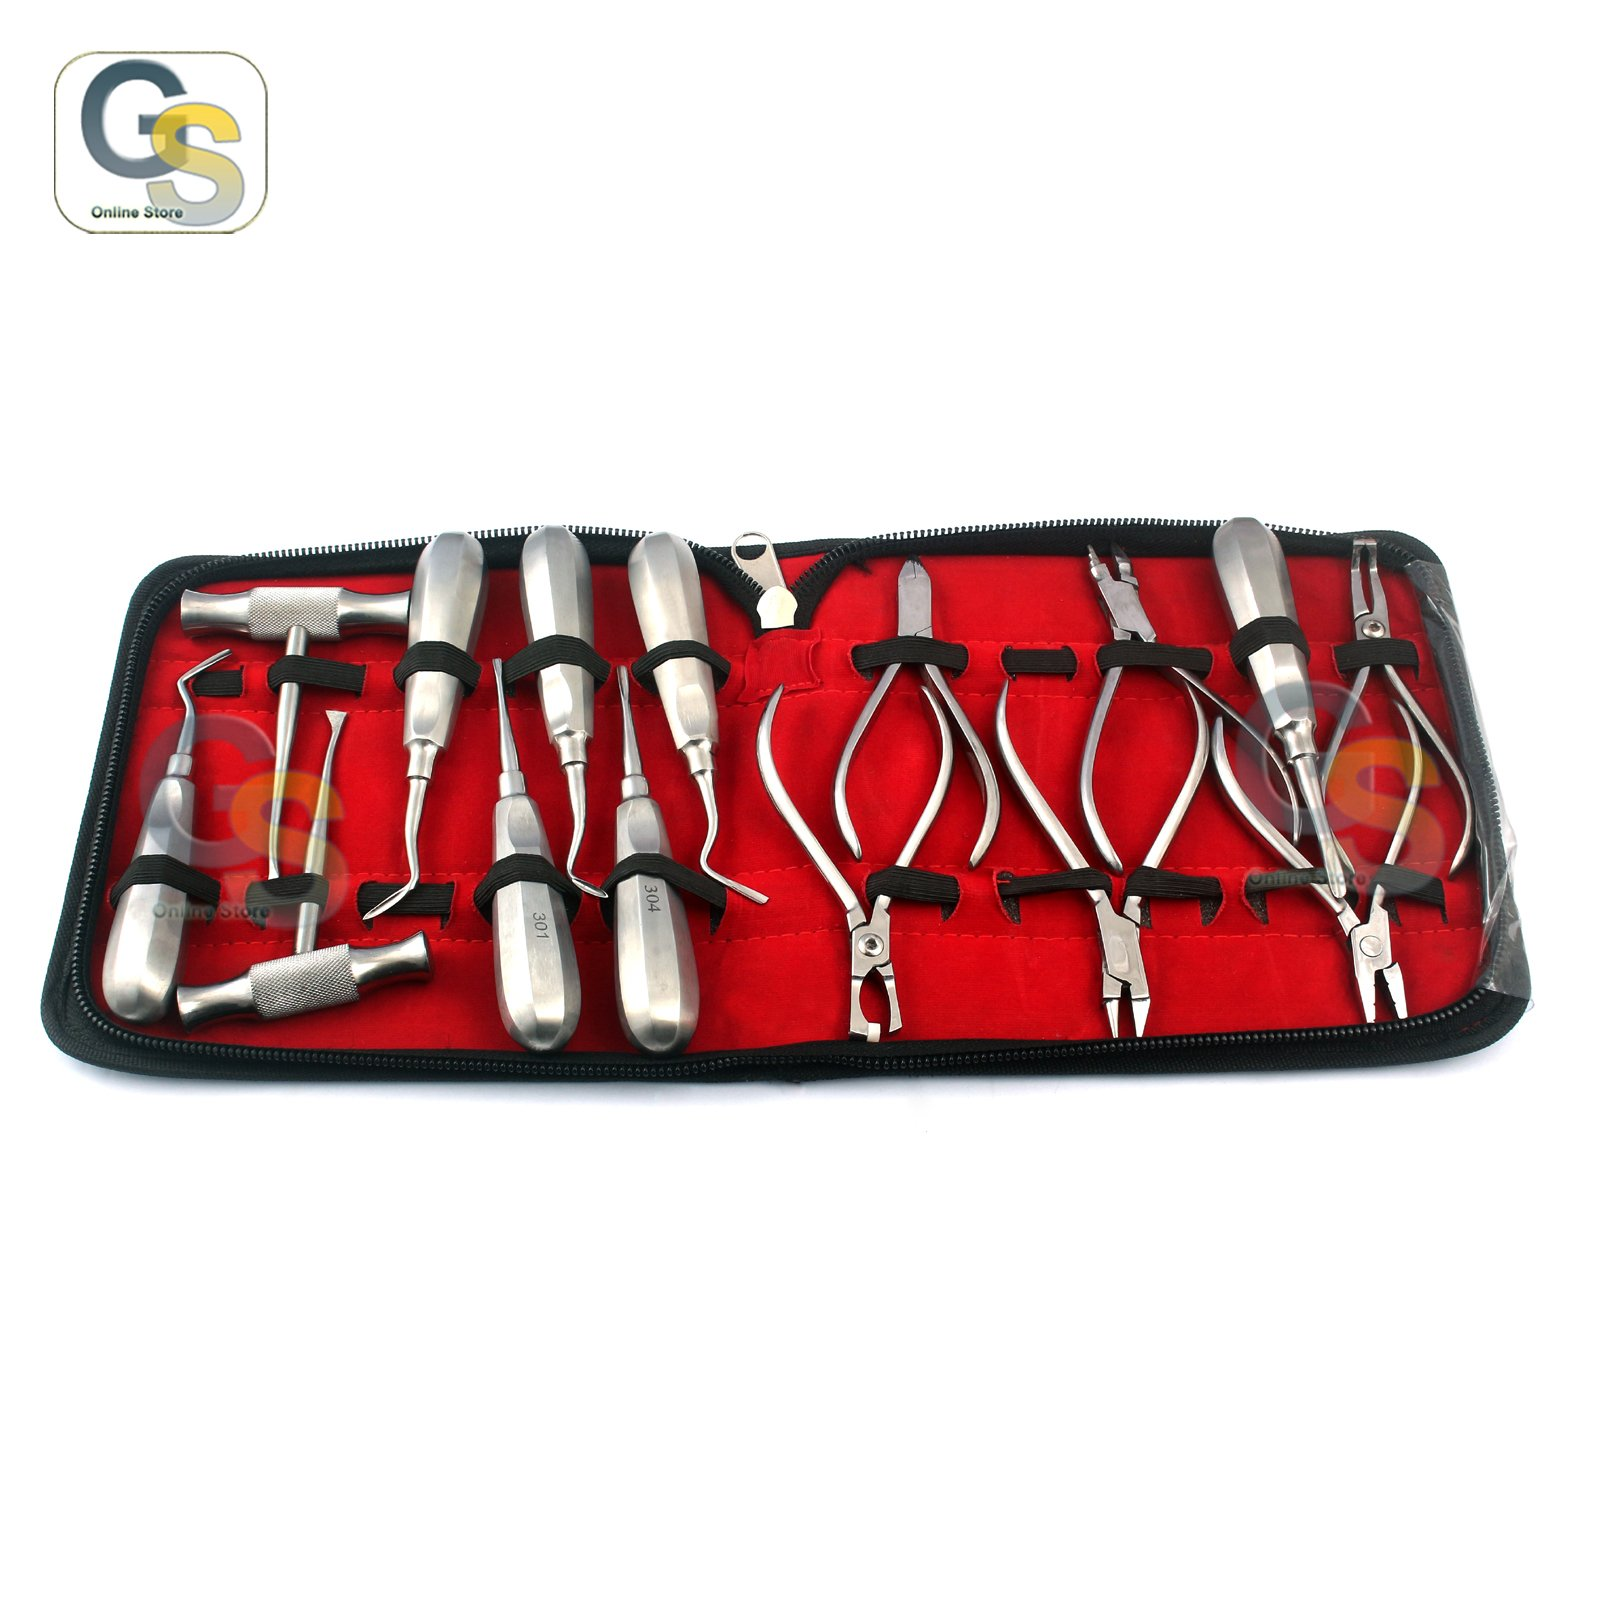 G.S - ASSORTED SET OF 15 PCS DENTAL INSTRUMENTS ELEVATOR, WIRE CUTTER AND CHISEL BEST QUALITY